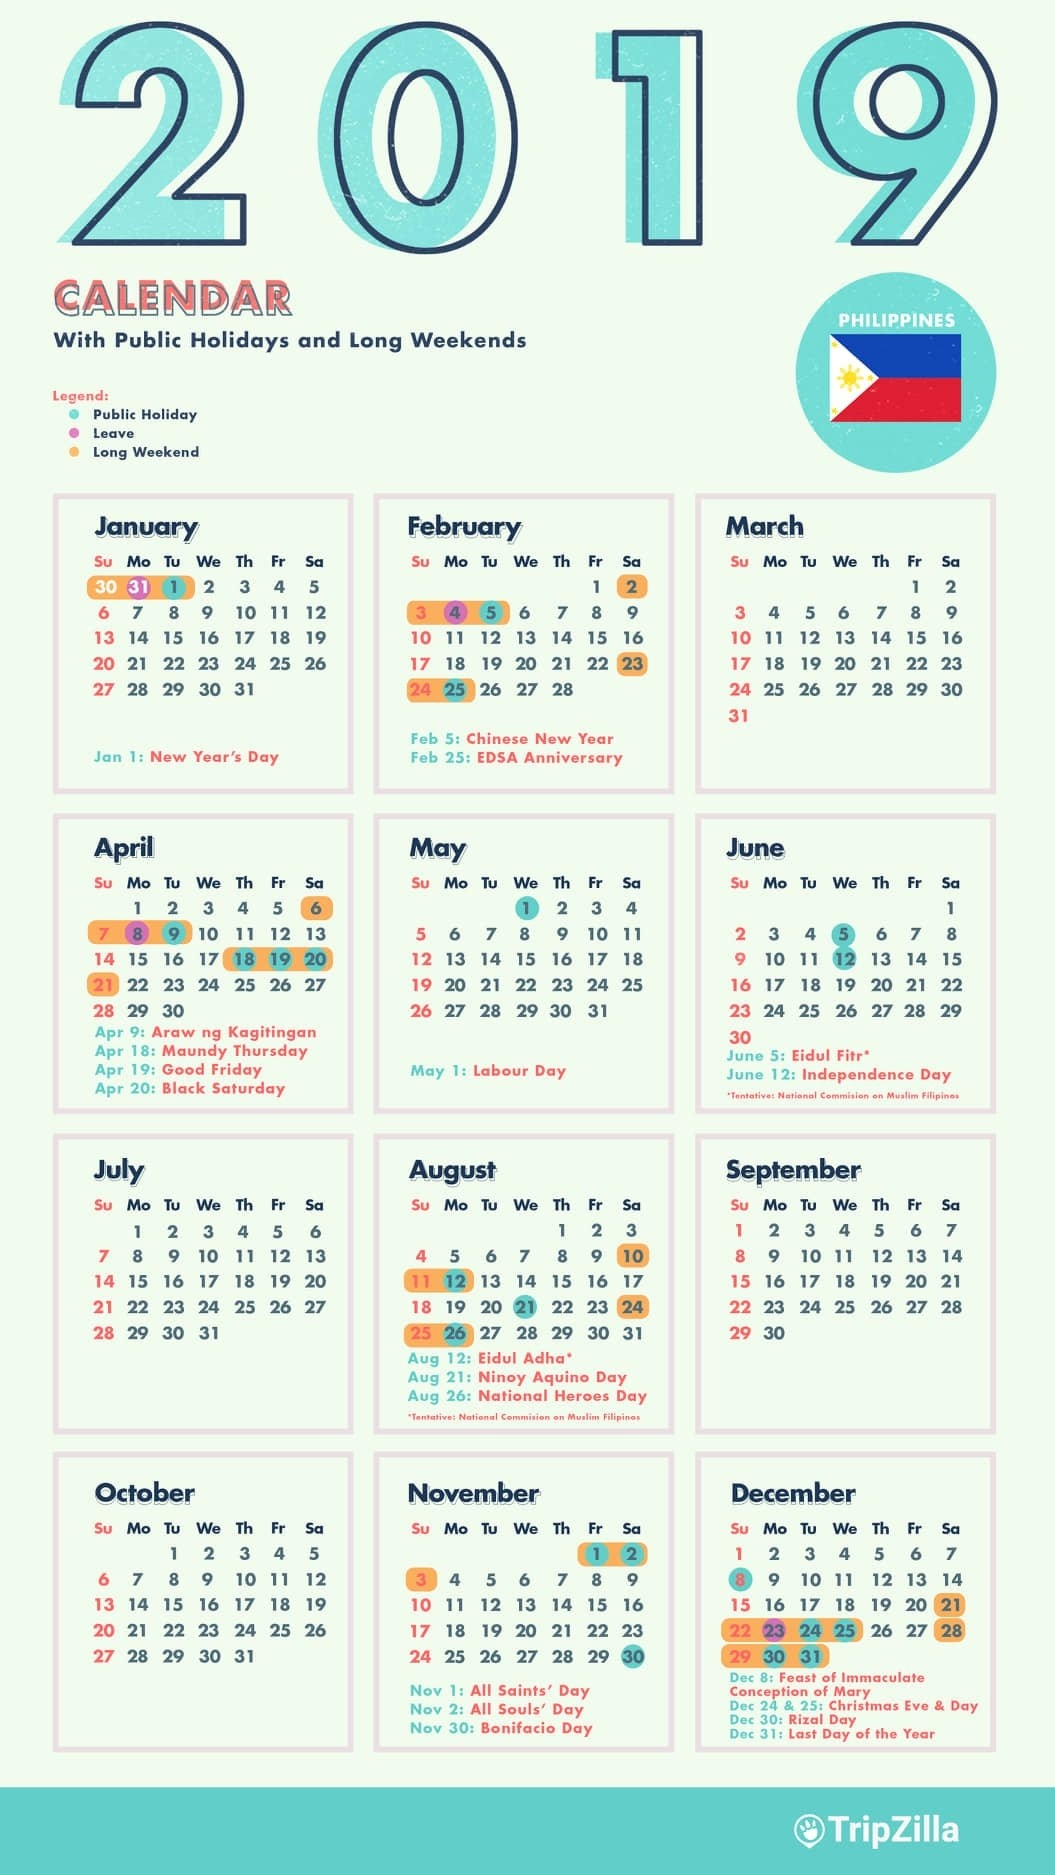 10 Long Weekends In The Philippines In 2019 With Calendar & Cheatsheet Calendar Year 2019 Philippines